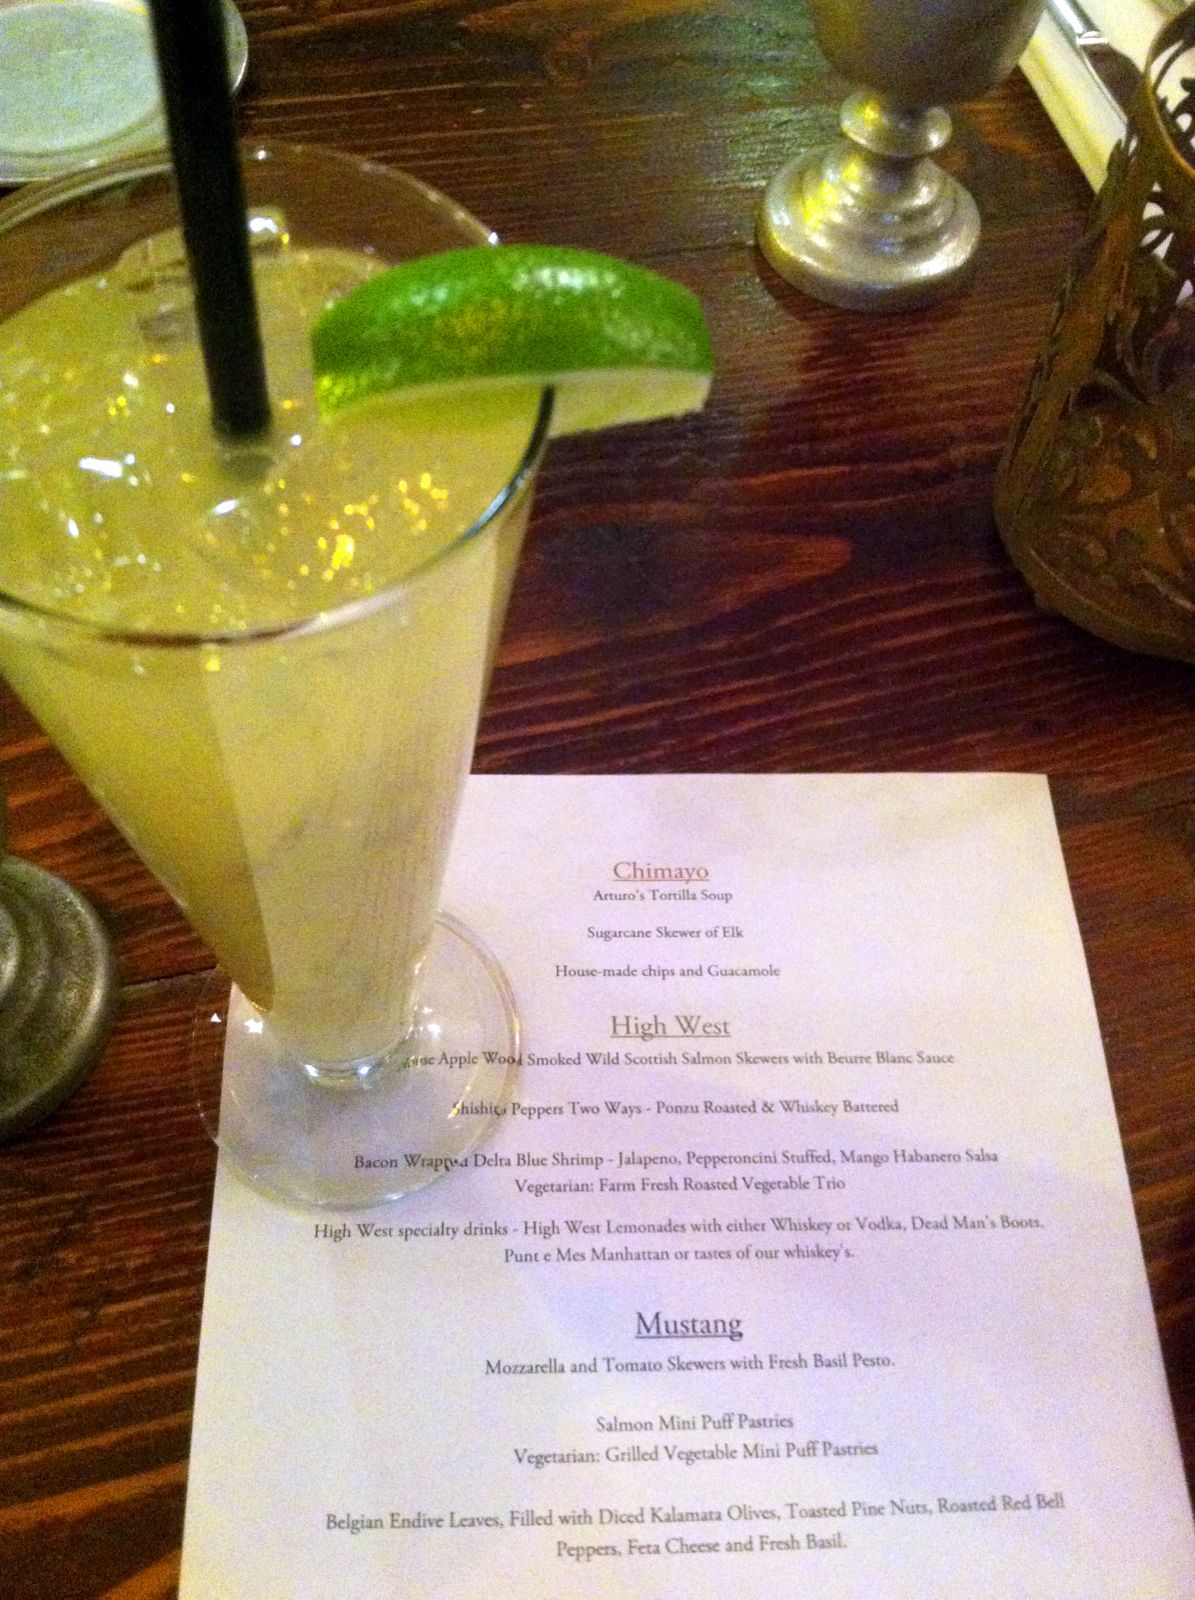 Chimayo Restaurant in Park City, UT has a margarita that puts all others to shame!